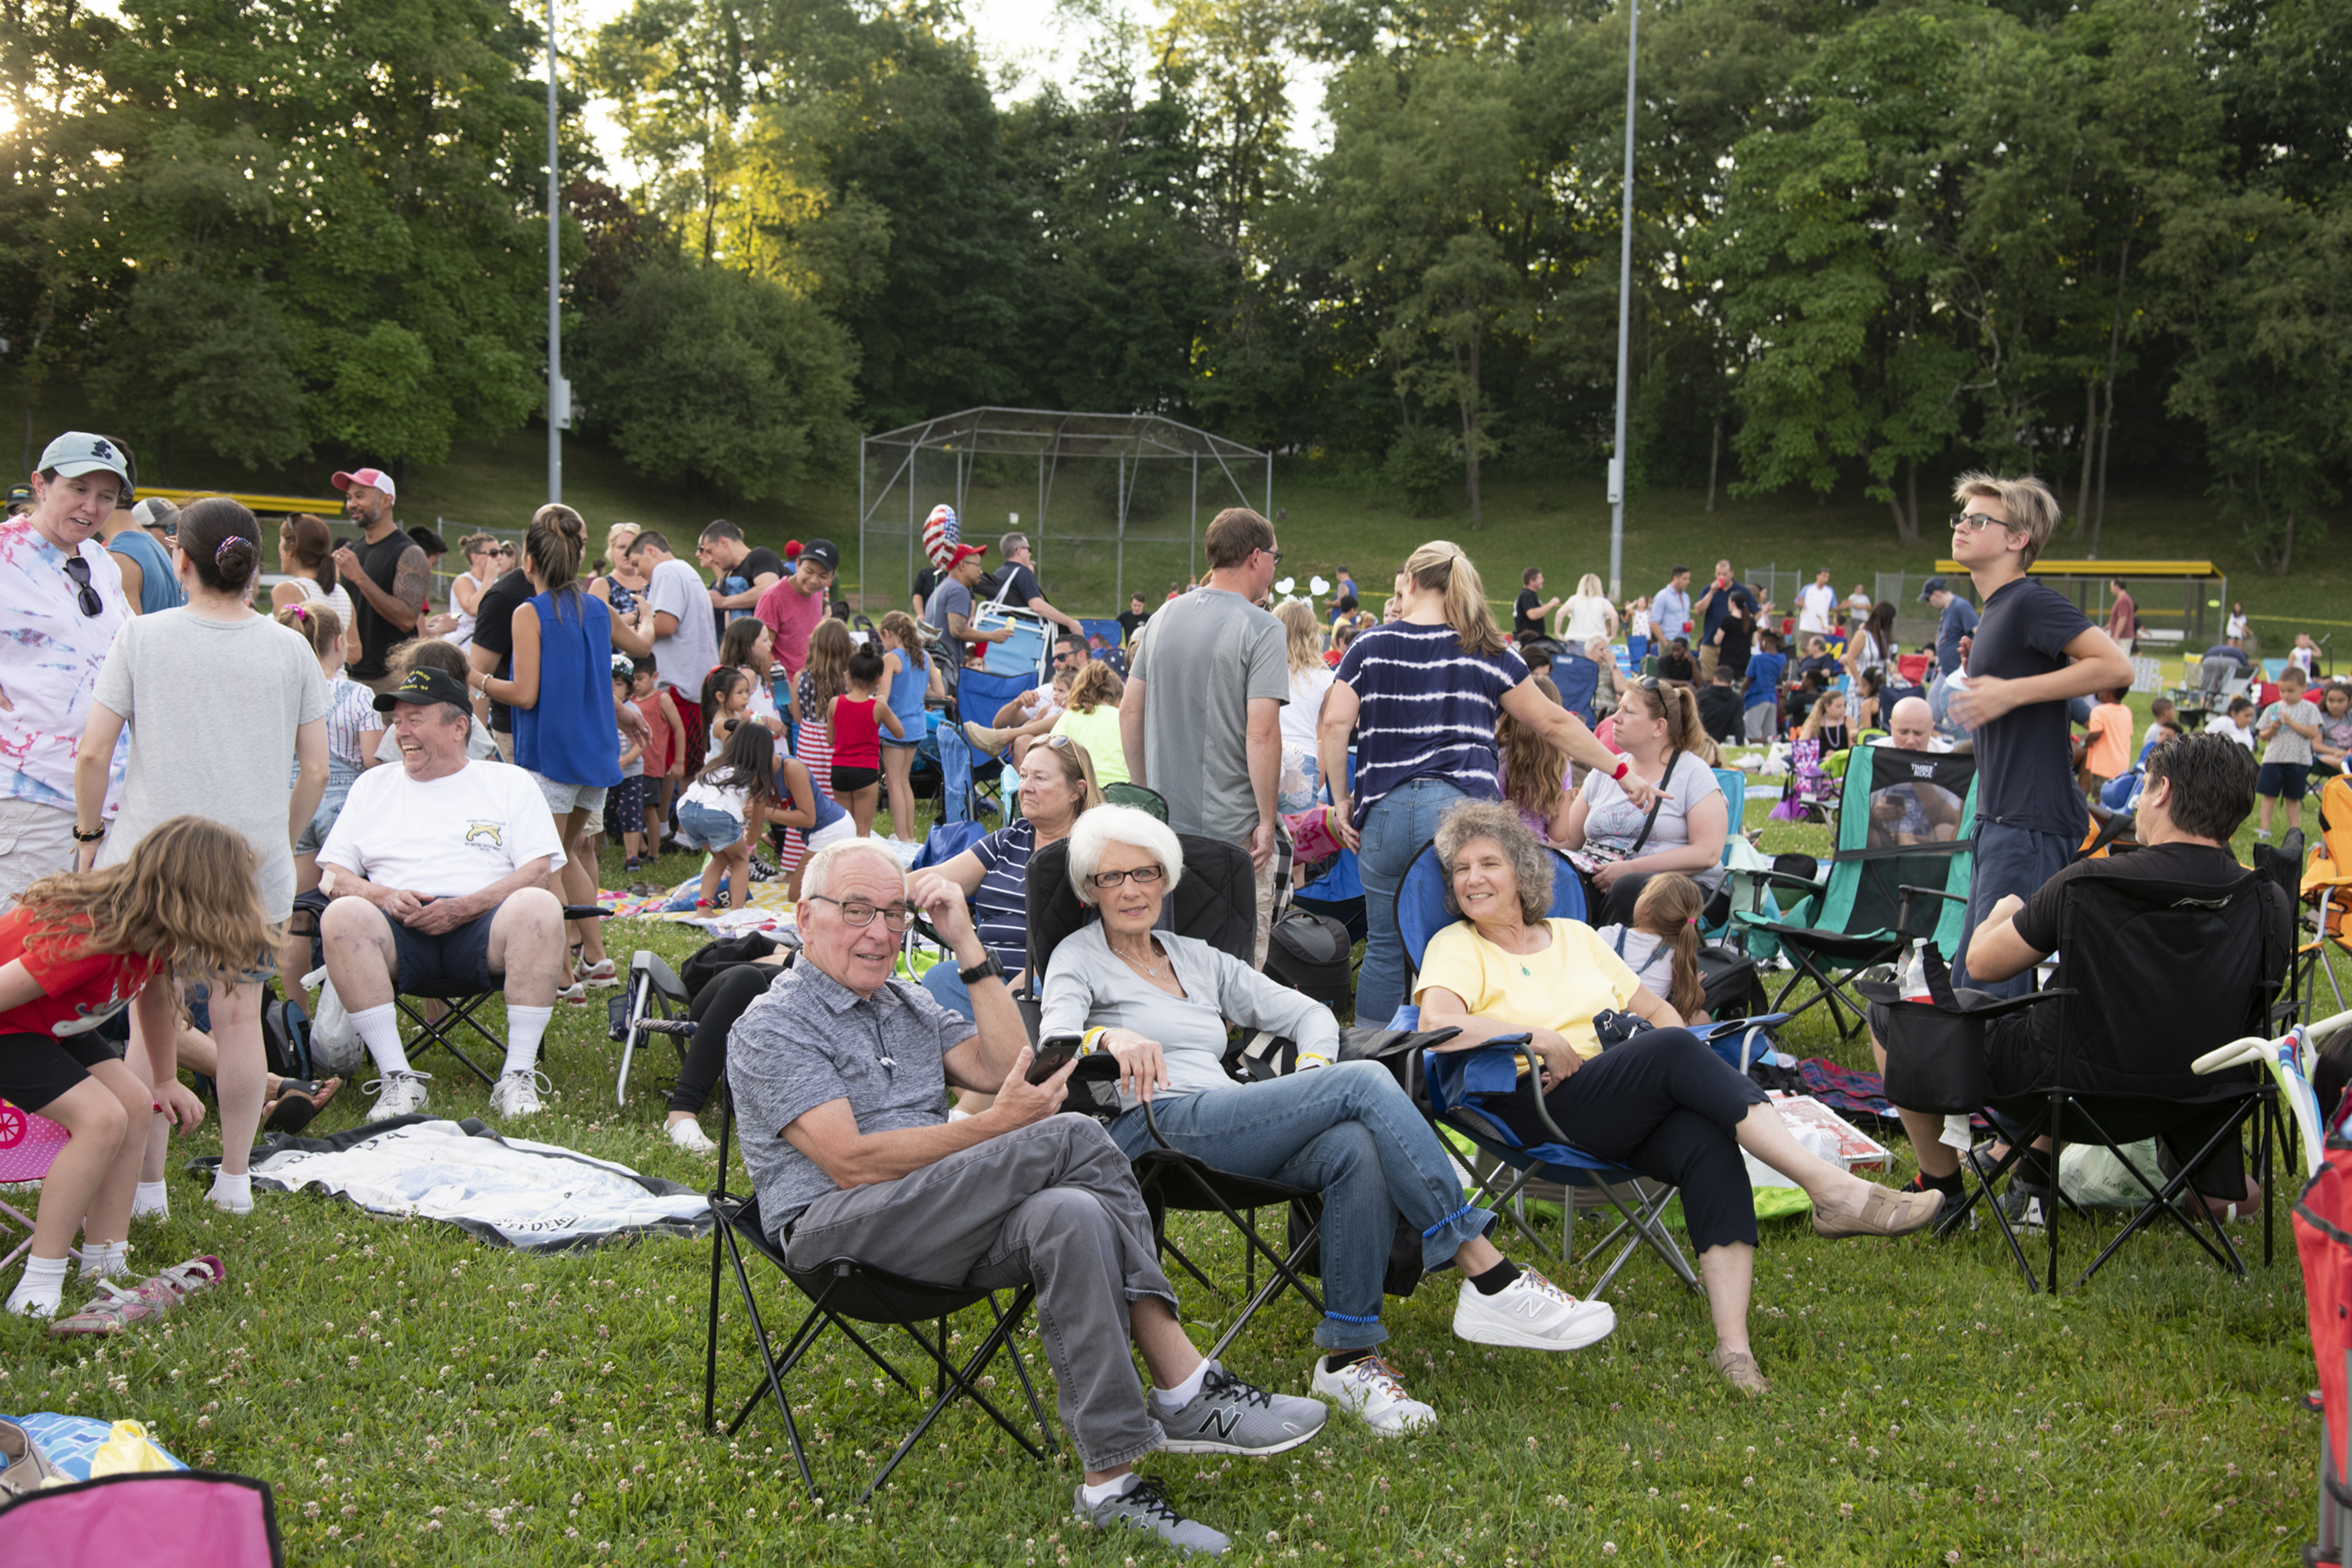 Residents of Clarkstown await a fireworks display.